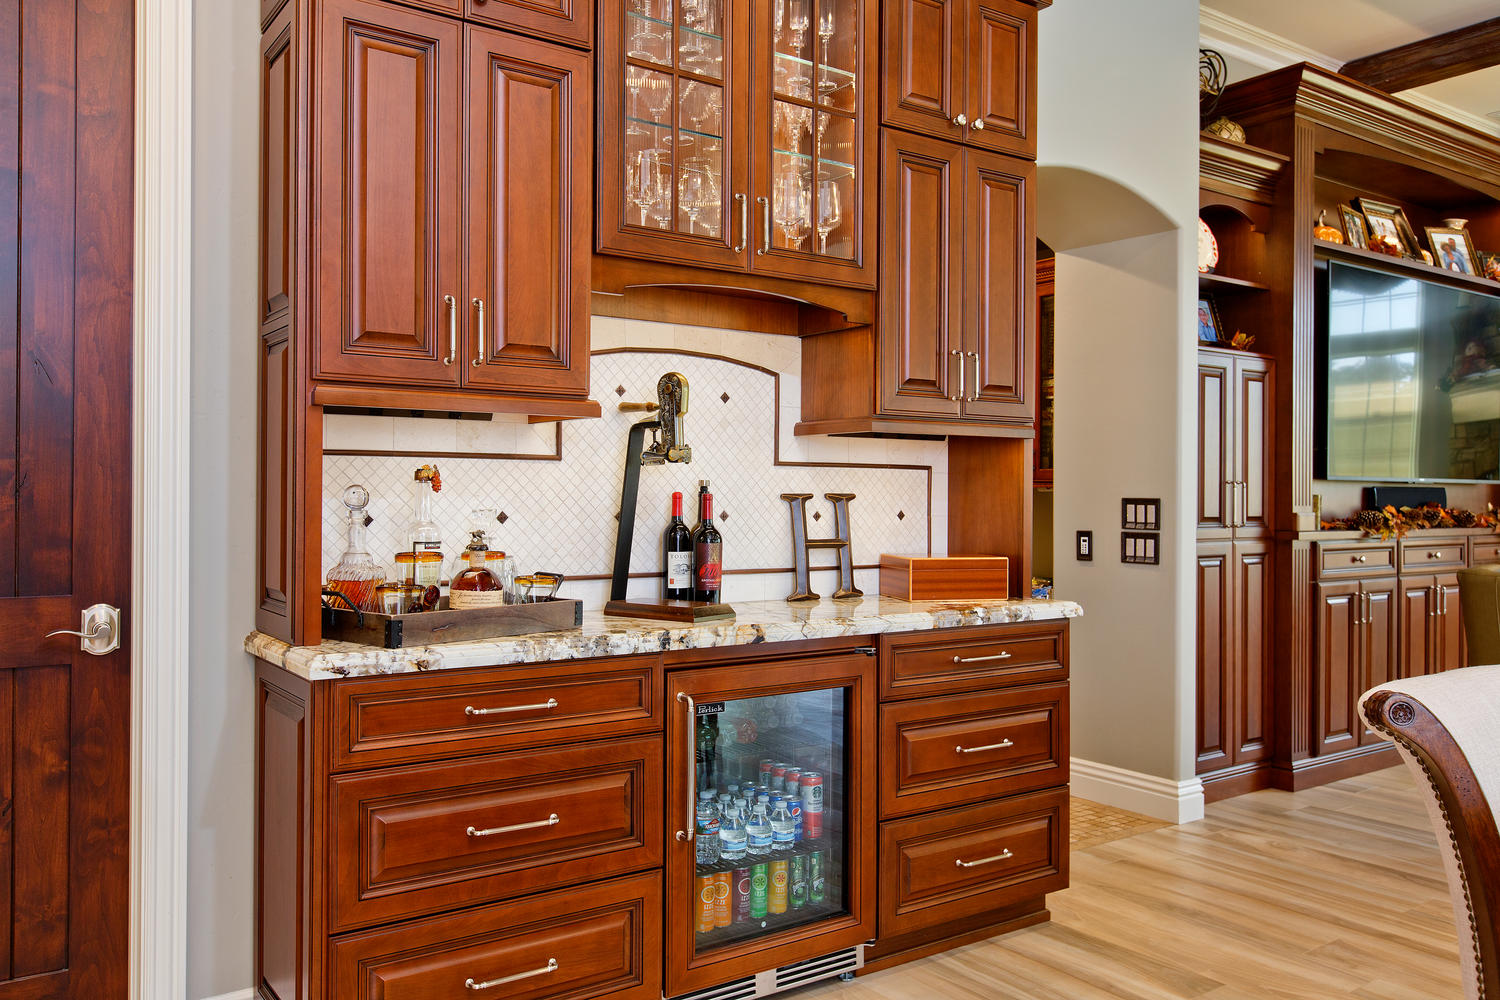 6993 Blue Orchid Ln Carlsbad-large-014-21-6993 Blue Orchid Lane KITCHEN-1500x1000-72dpi.jpg